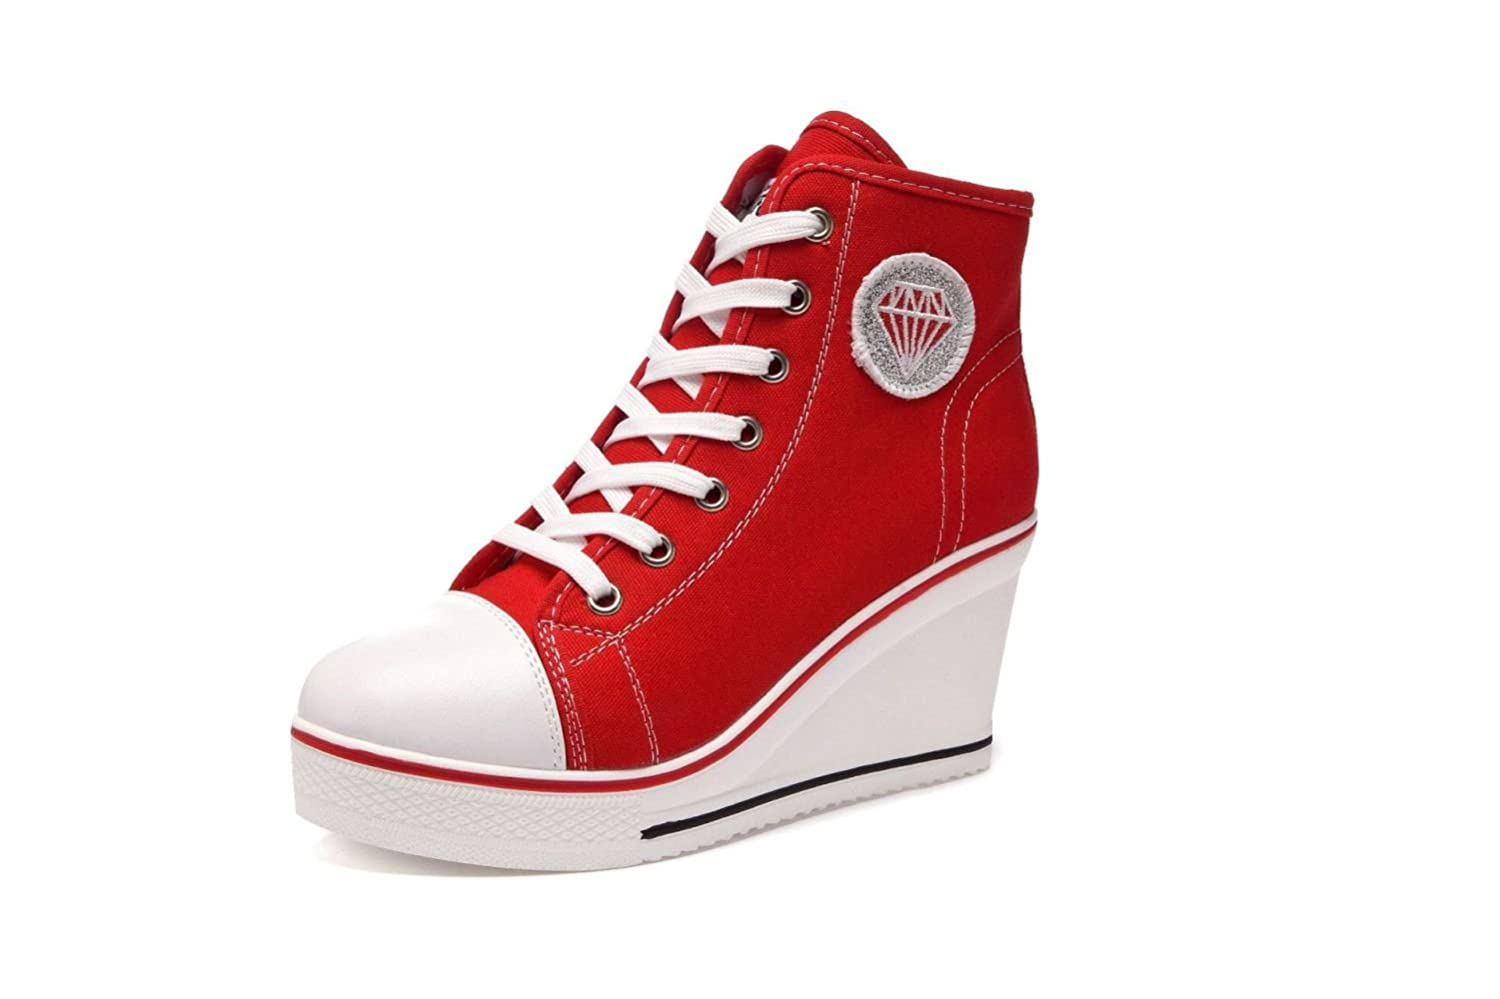 NBWE Taille Femmes Wedge Up Heels Sneakers Toile Chaussures Toile 8cm Raise Chaussures Zipper Lace Up Taille 40-43 Chaussures Casual Red 665956d - conorscully.space